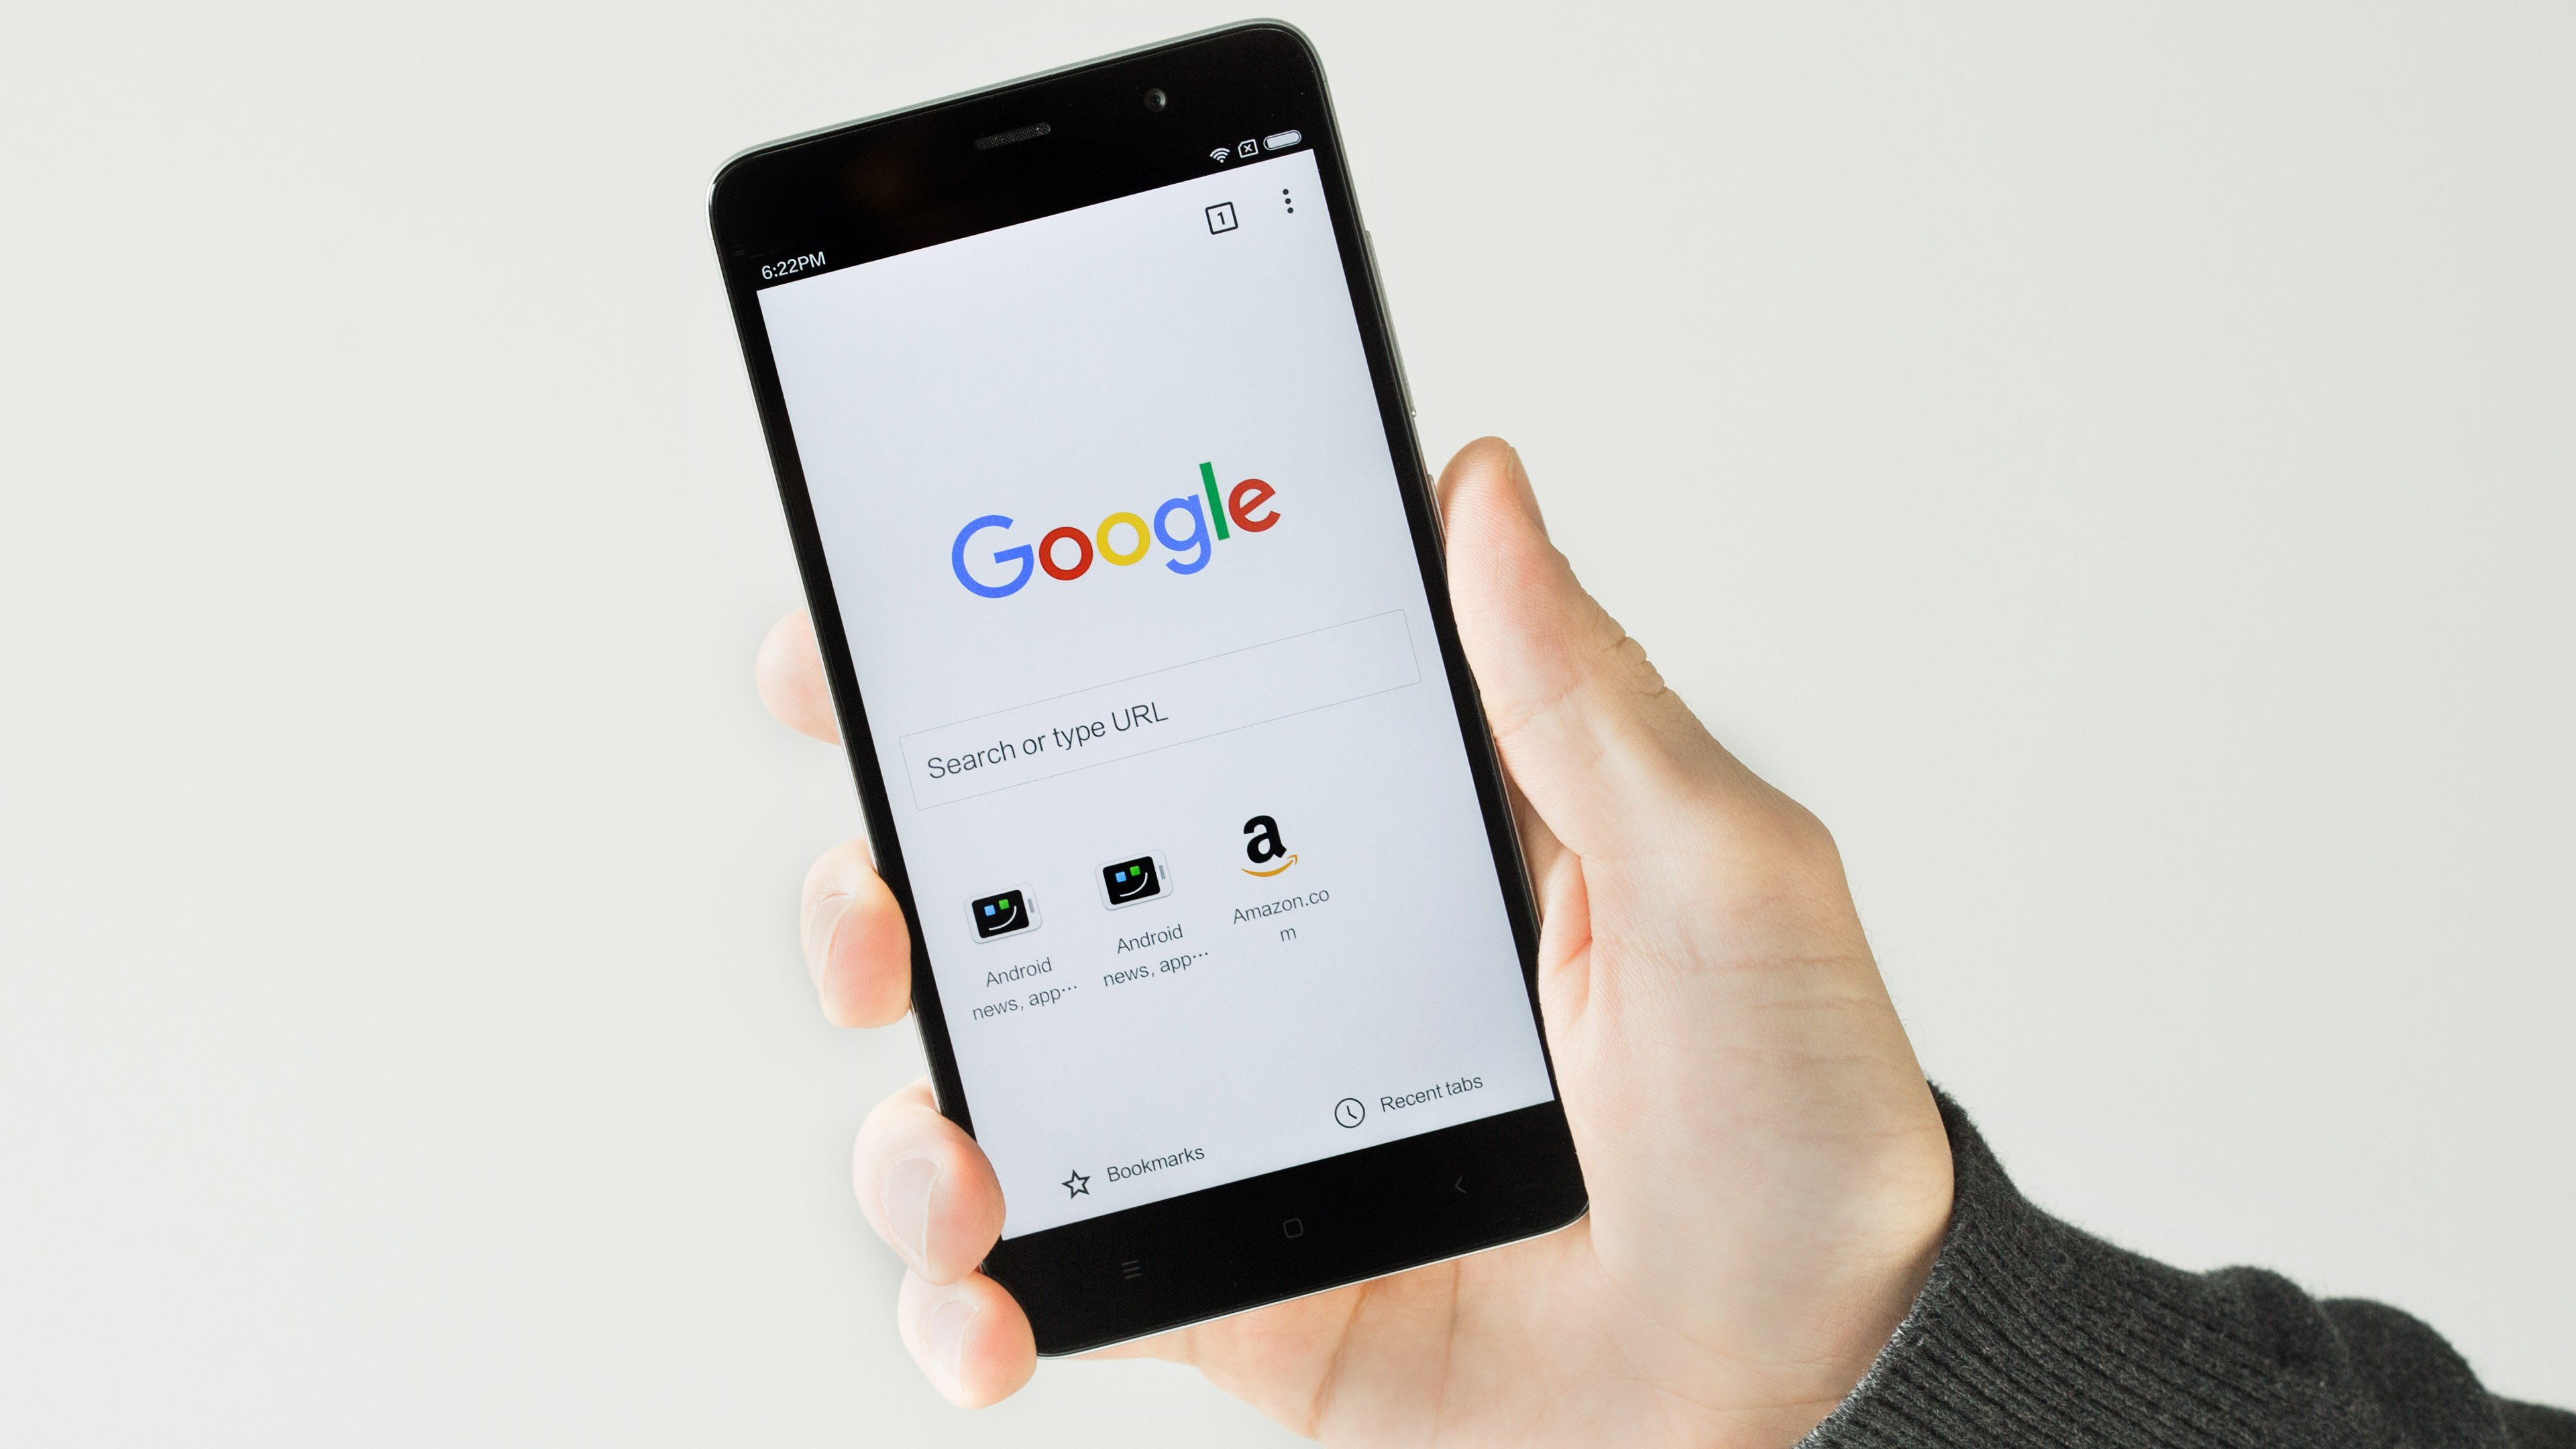 Paksa Vendor Pasang Chrome dan Search, Google Bisa Didenda